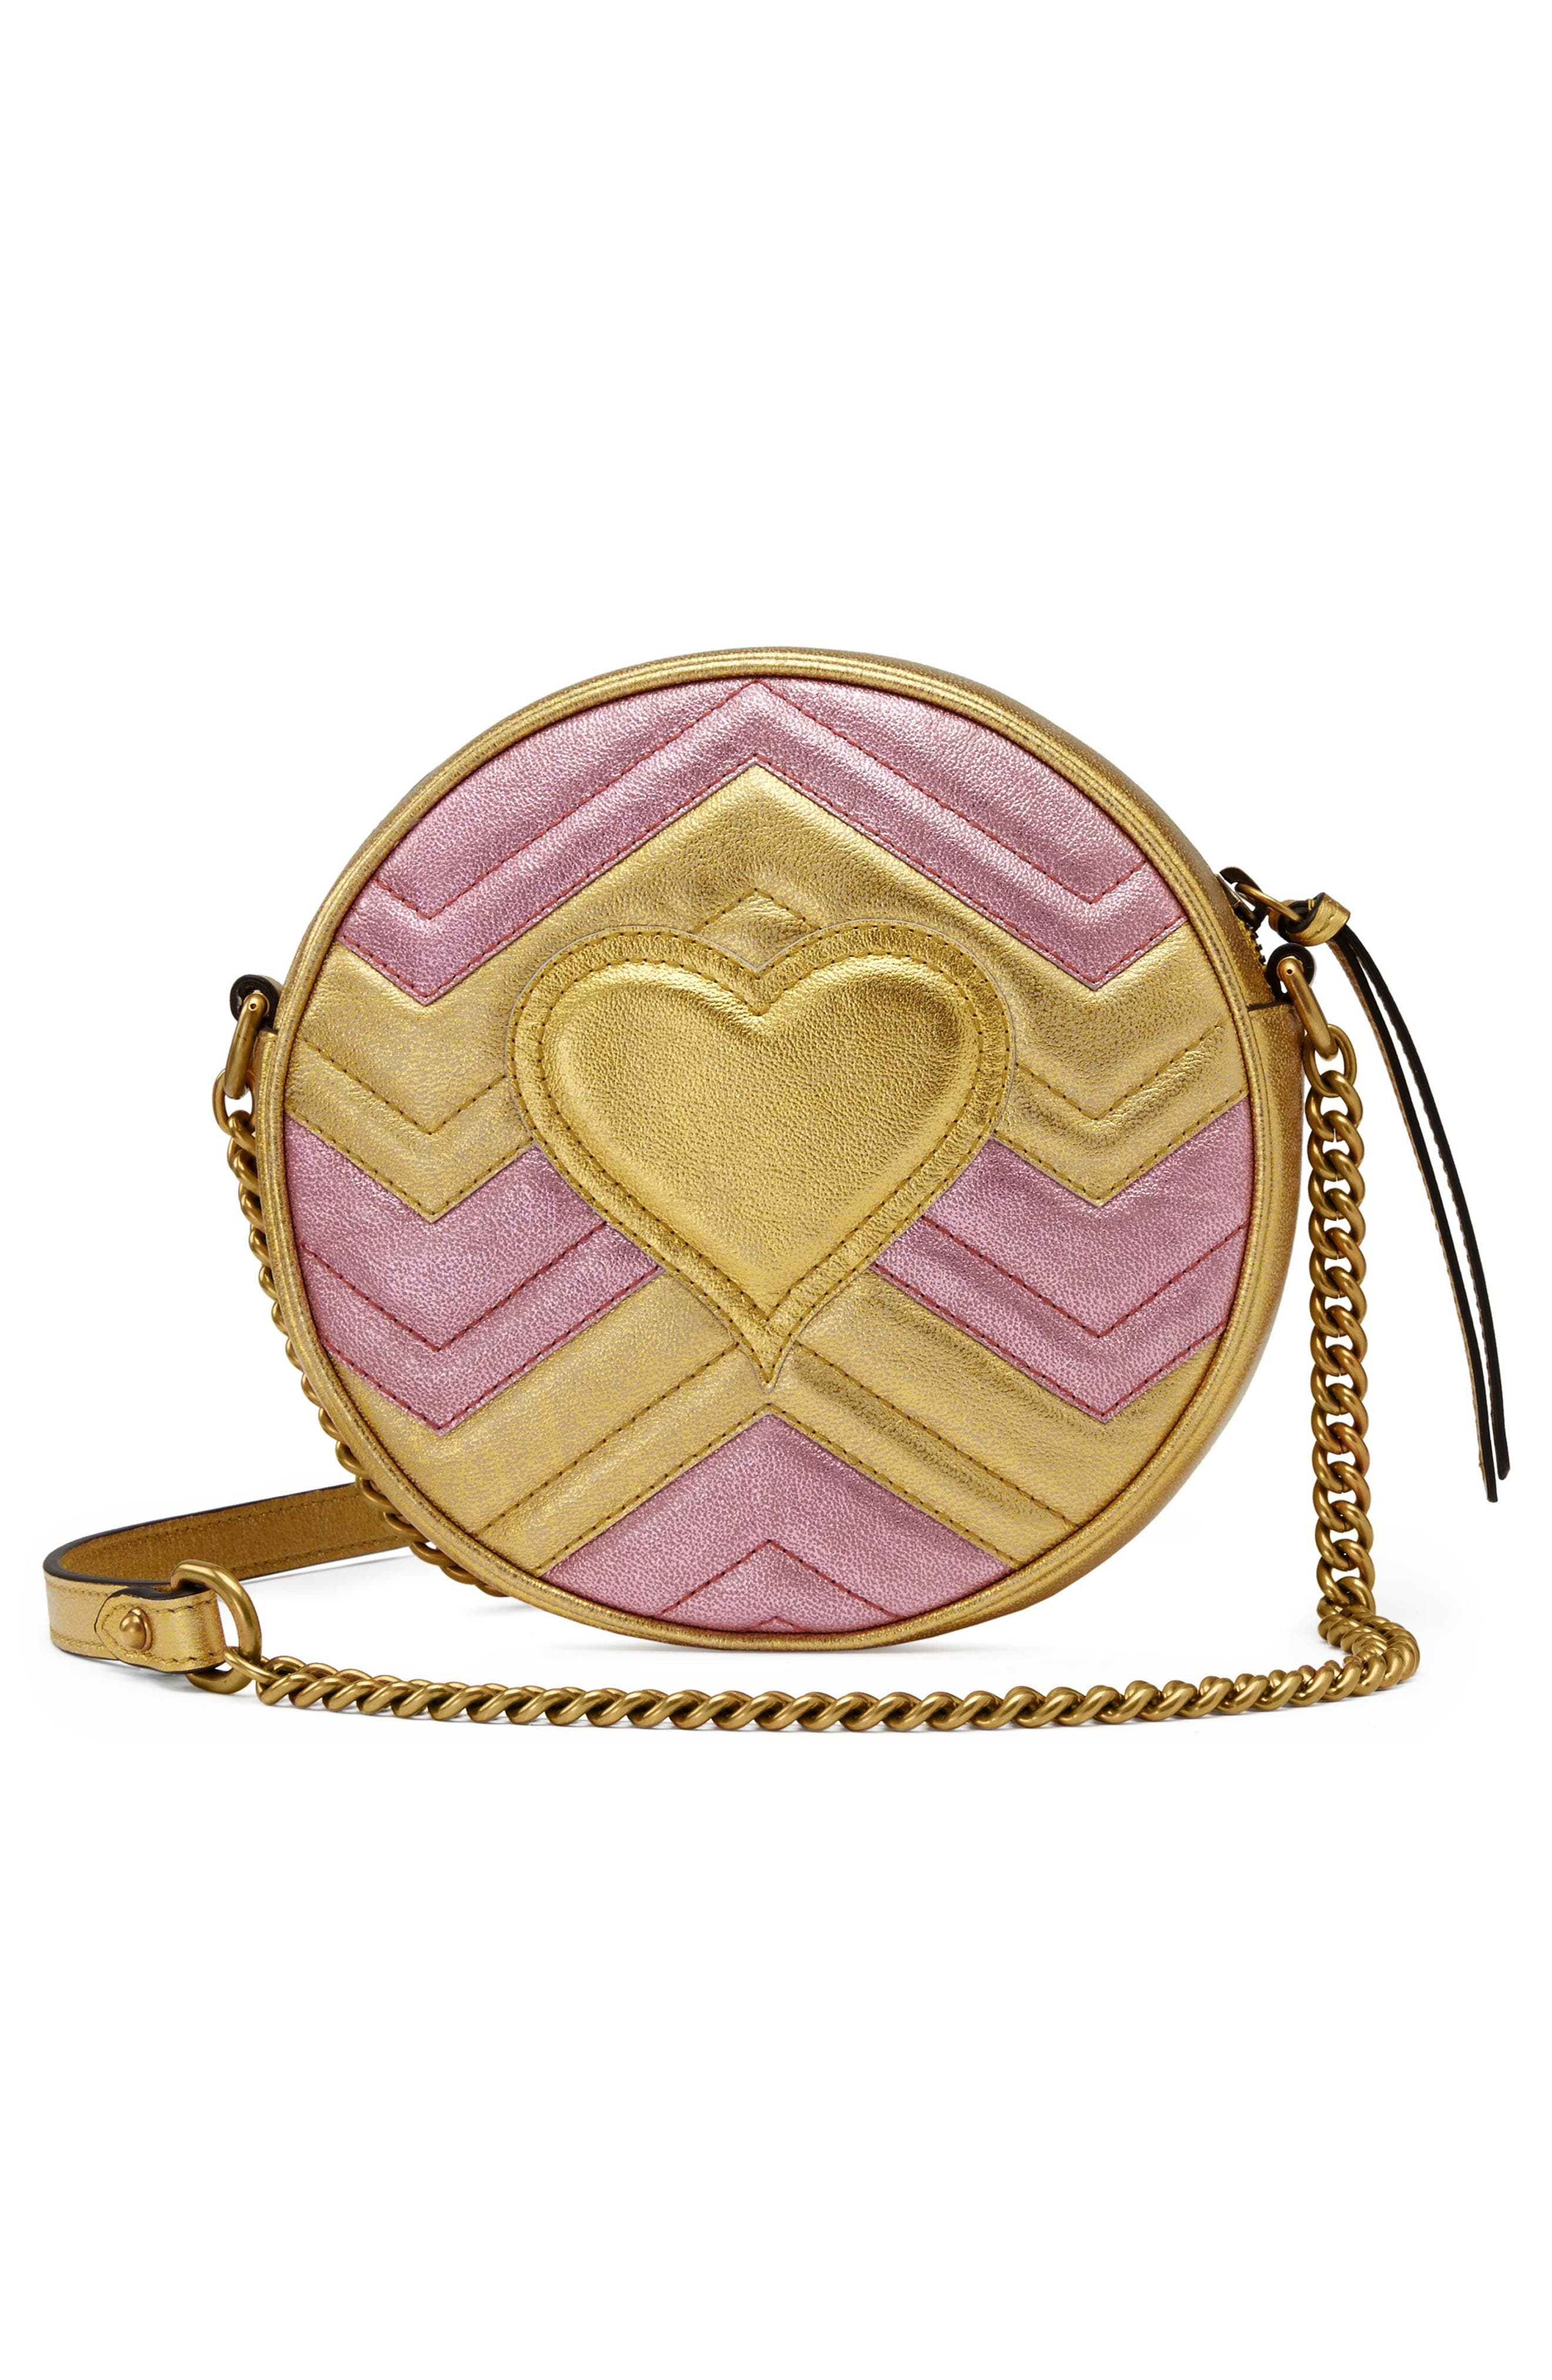 Marmont 2.0 Mini Leather Circle Crossbody Bag,                             Alternate thumbnail 2, color,                             ORO/ ROSA